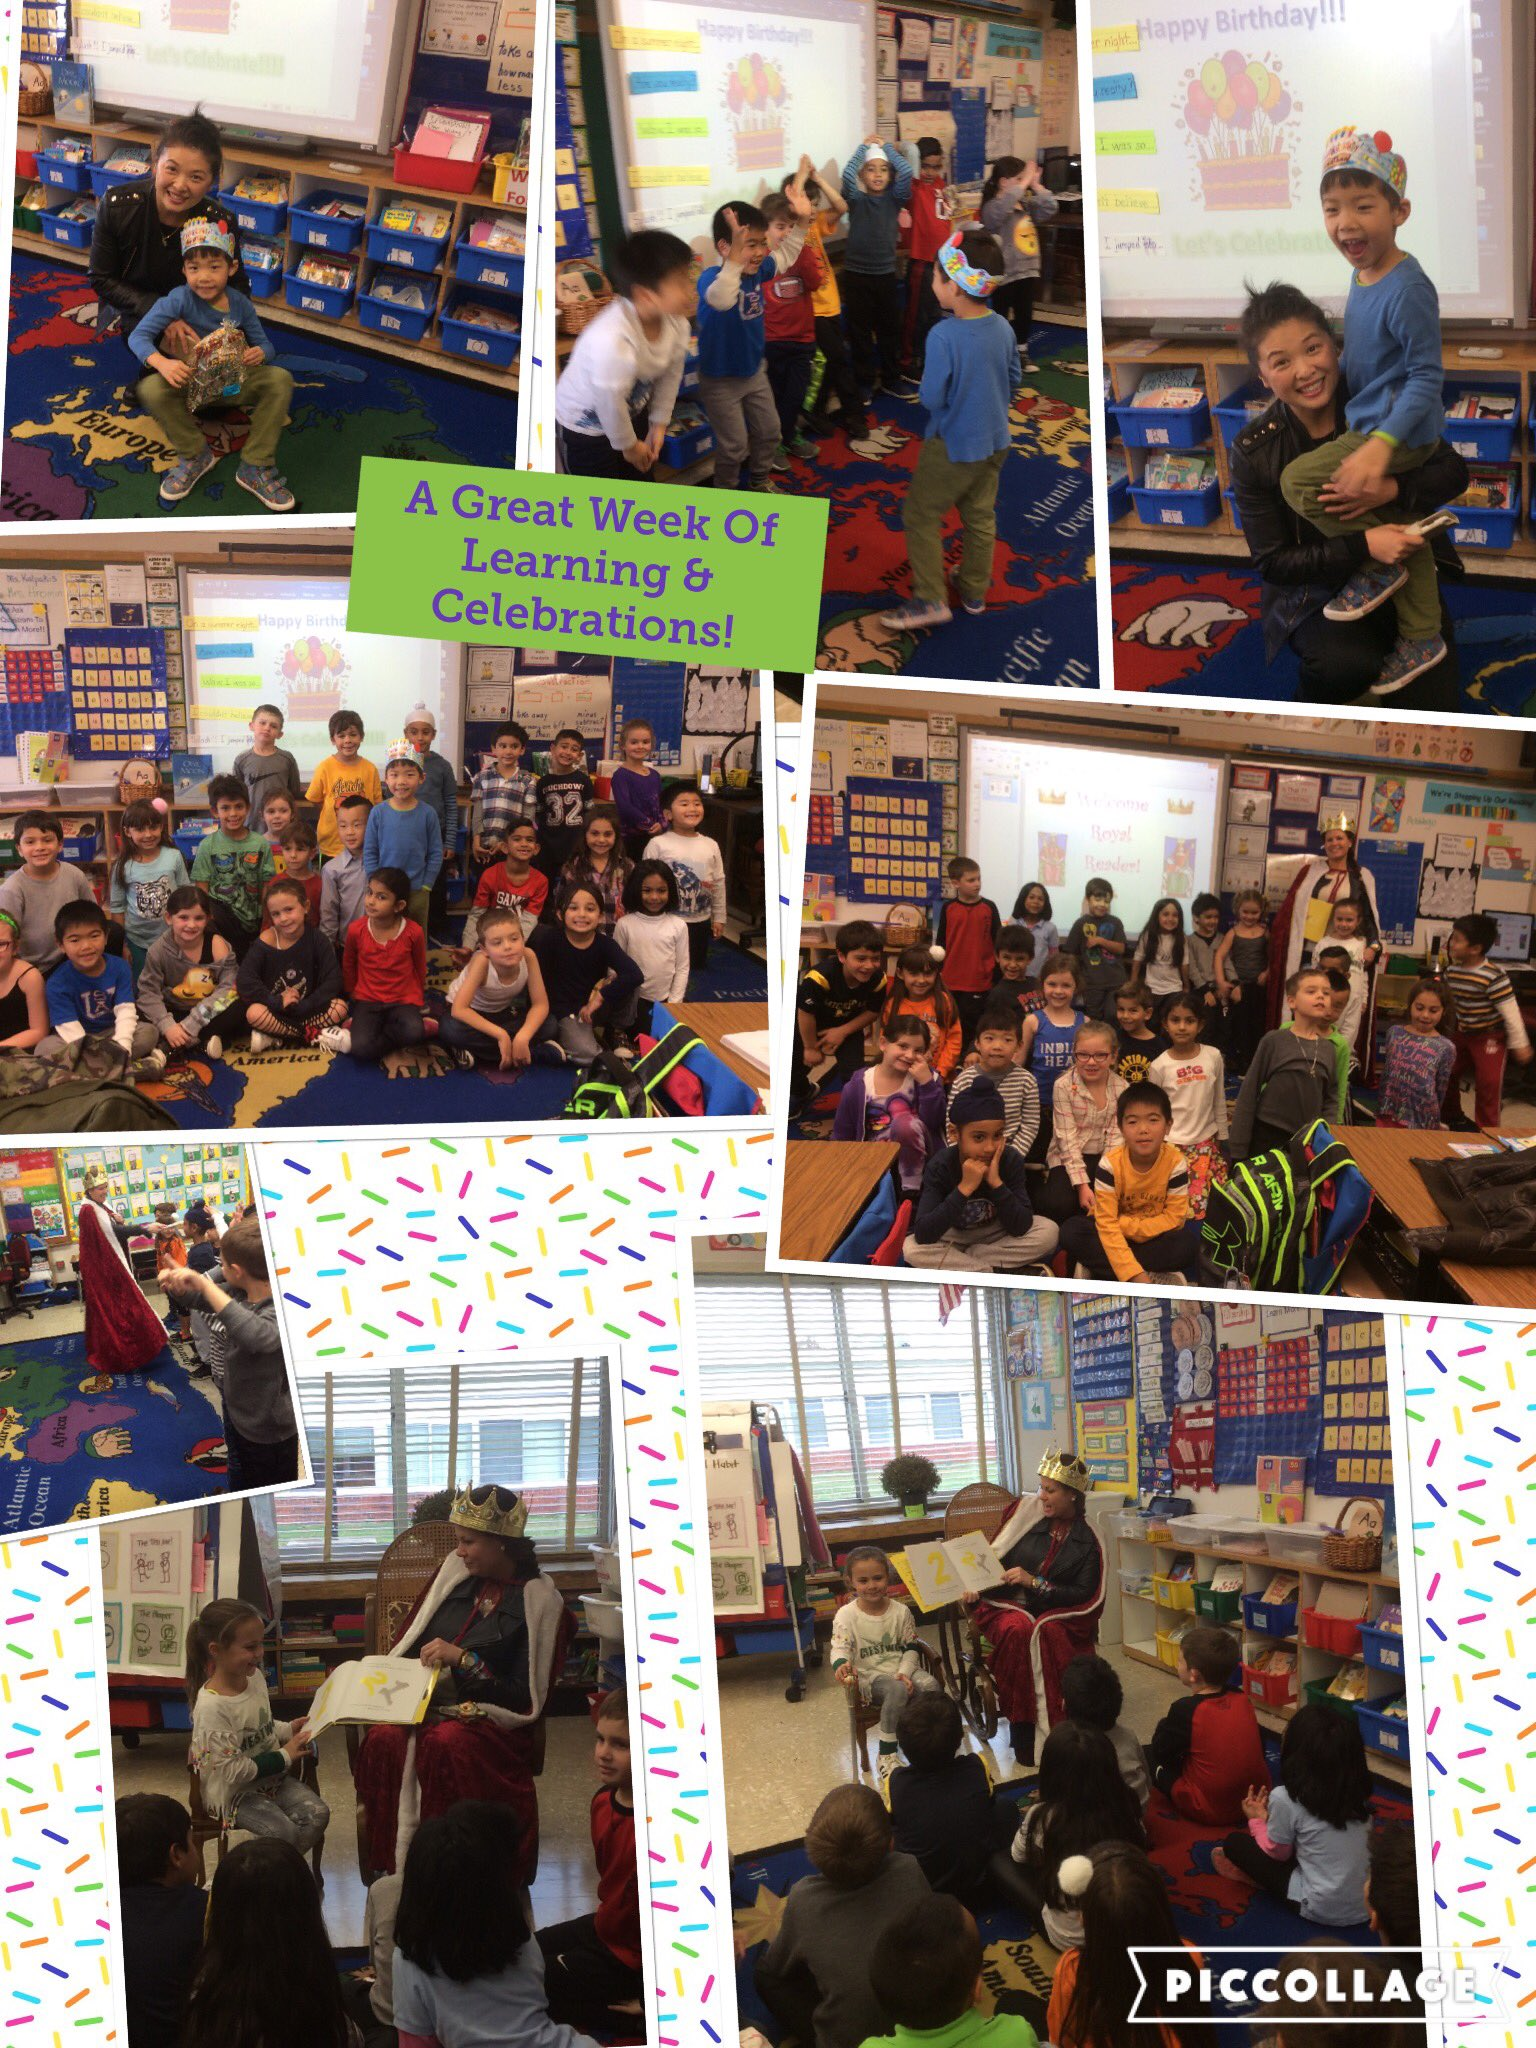 A Great Week Of Learning & Celebrations! #seamanstrength @Ivysherman https://t.co/SLhM8ATb4L